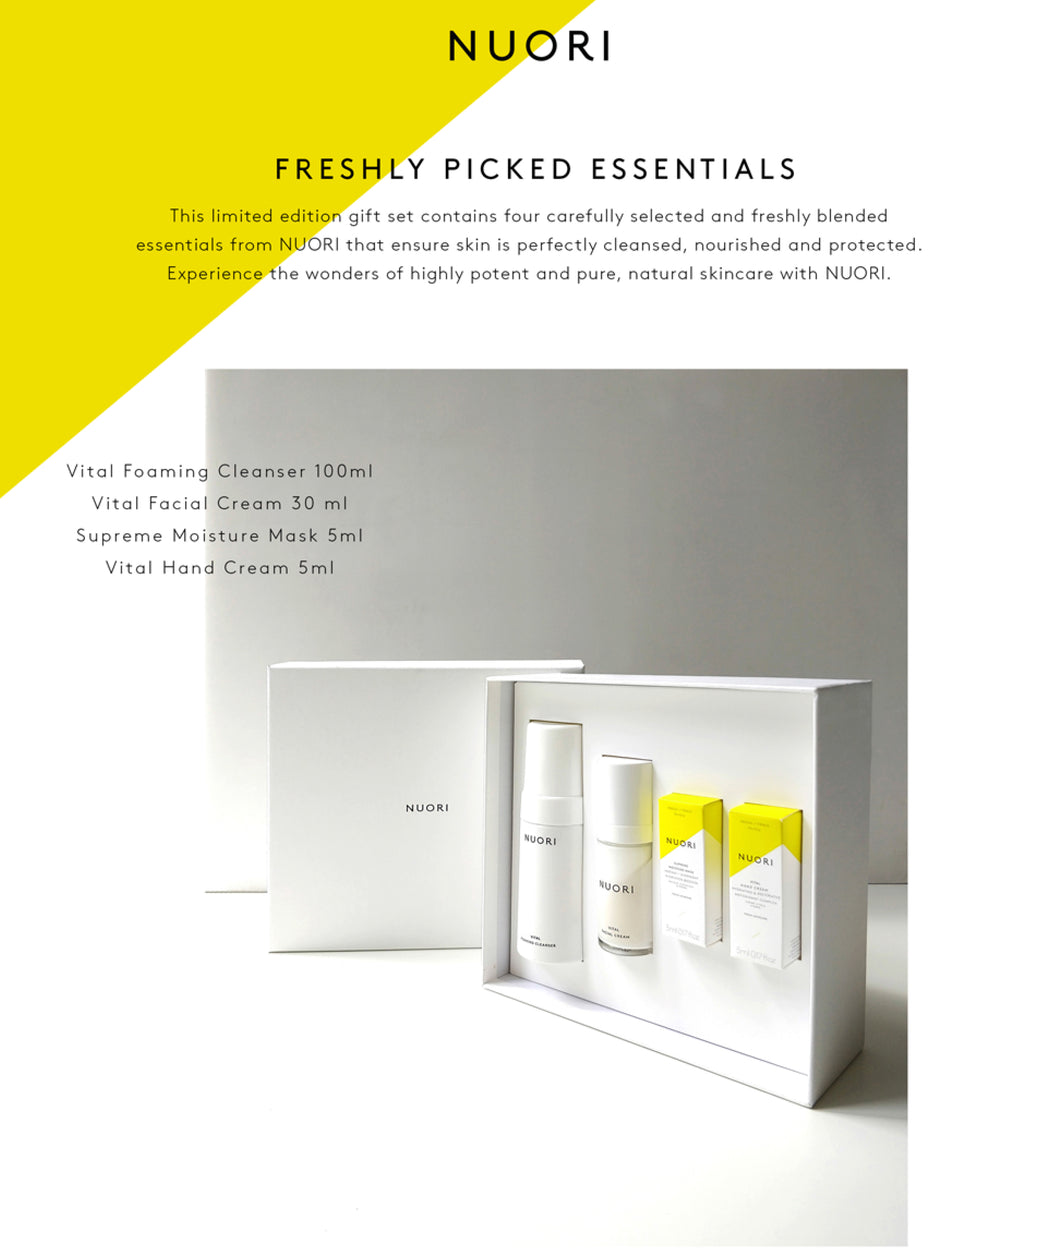 NUORI Freshly Picked Essentials Box